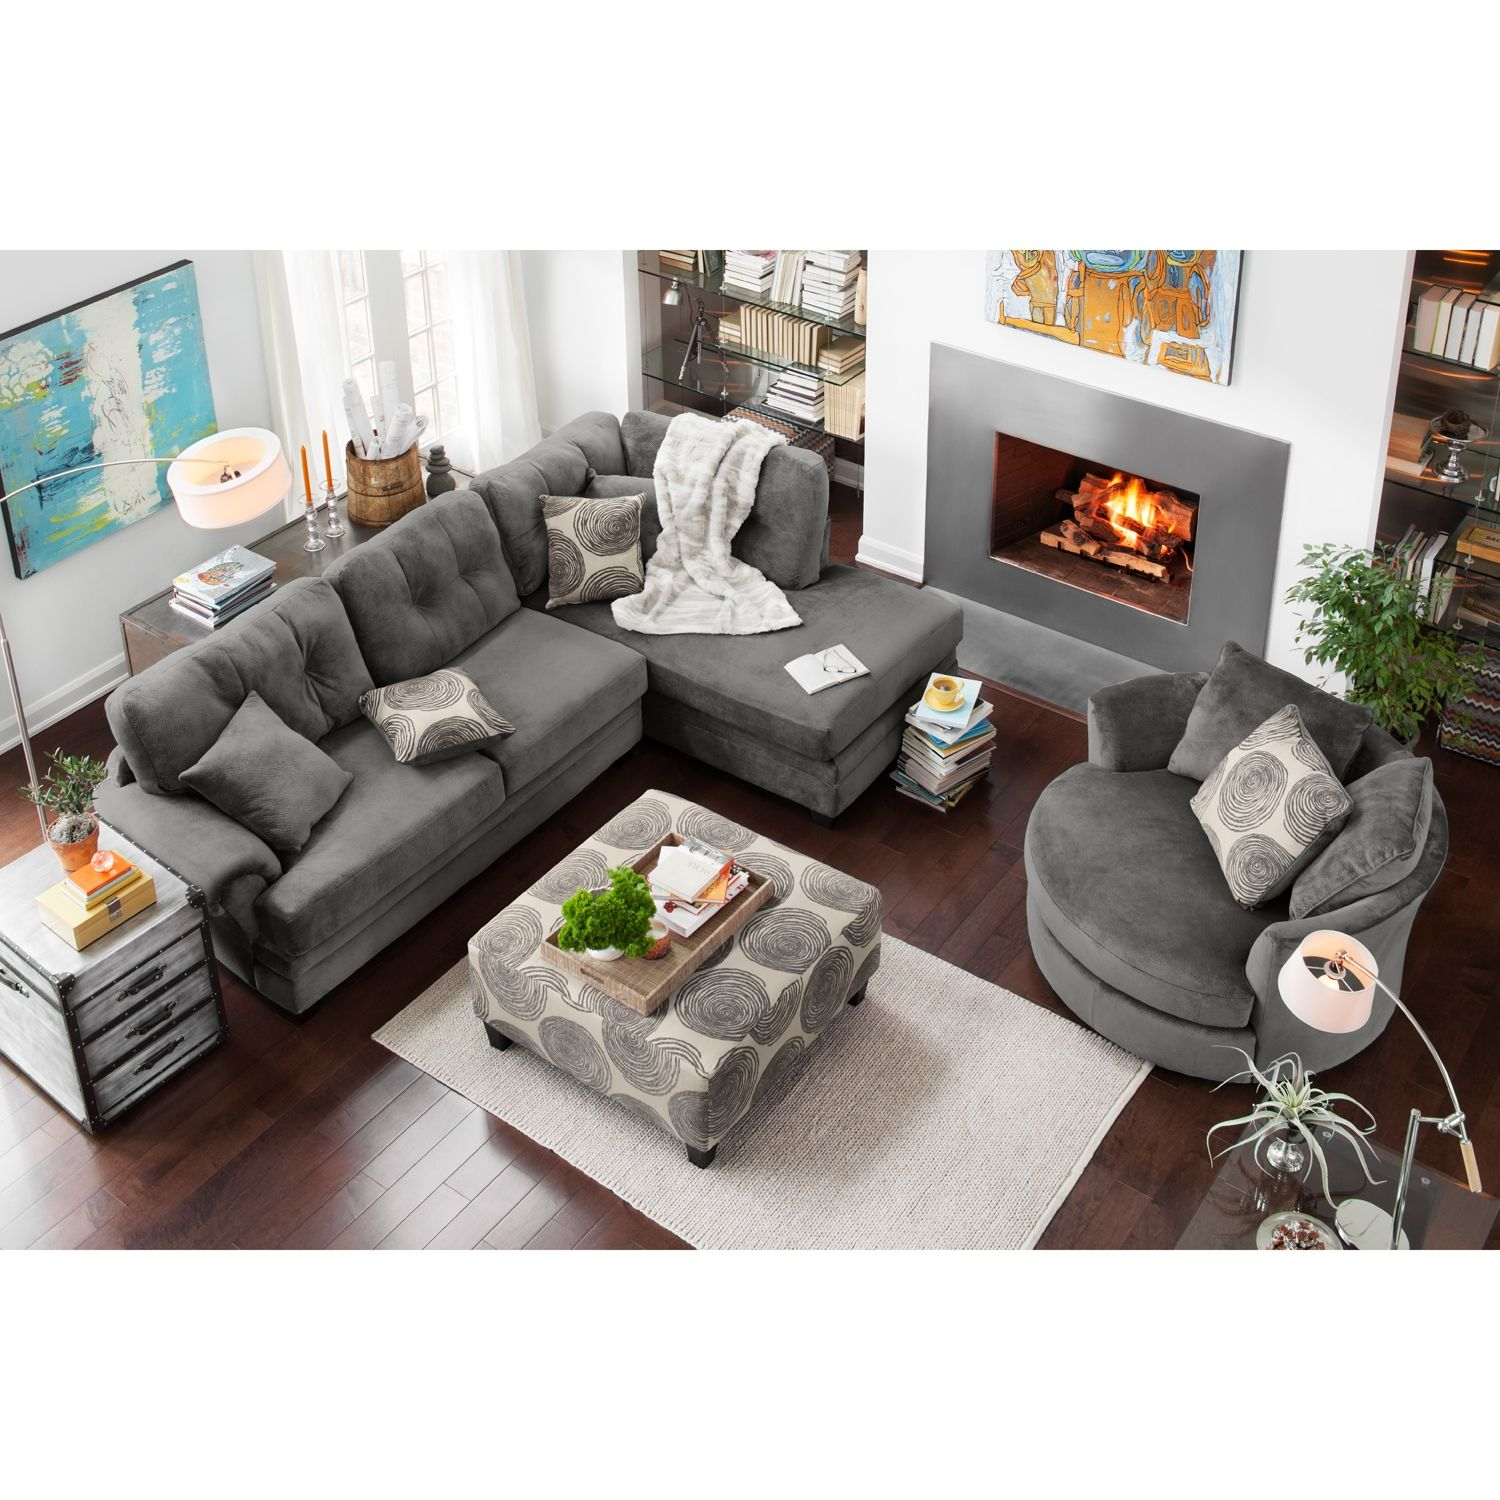 Value City Furniture Marco Chaise Sofa Good Brands Singapore Cordelle 2 Piece Sectional With Right Facing Gray